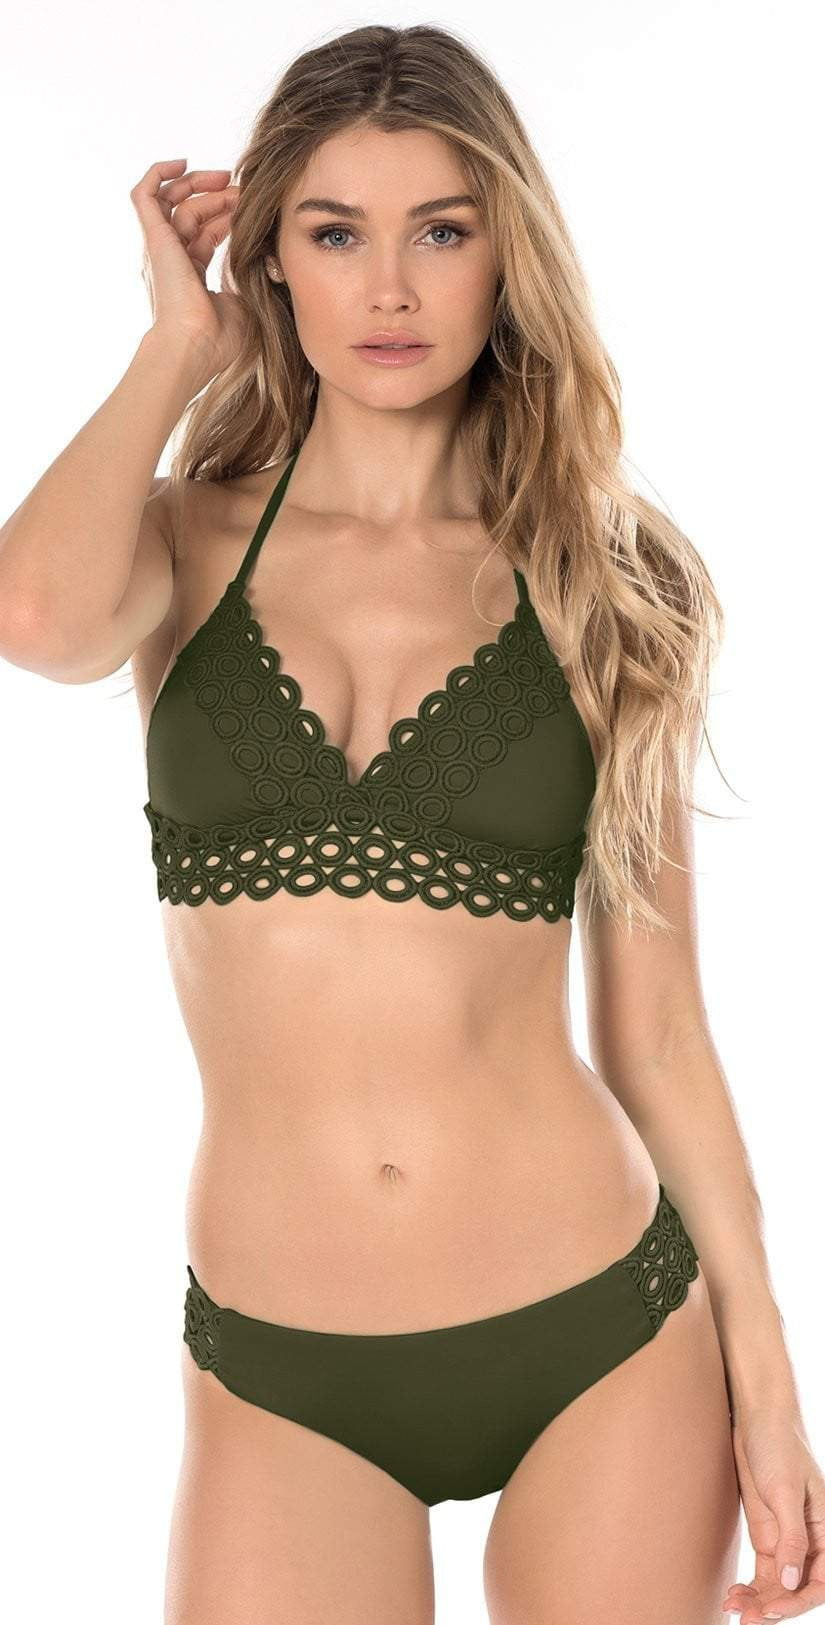 Becca Siren Halter Top in Bayleaf 583187-BAY: